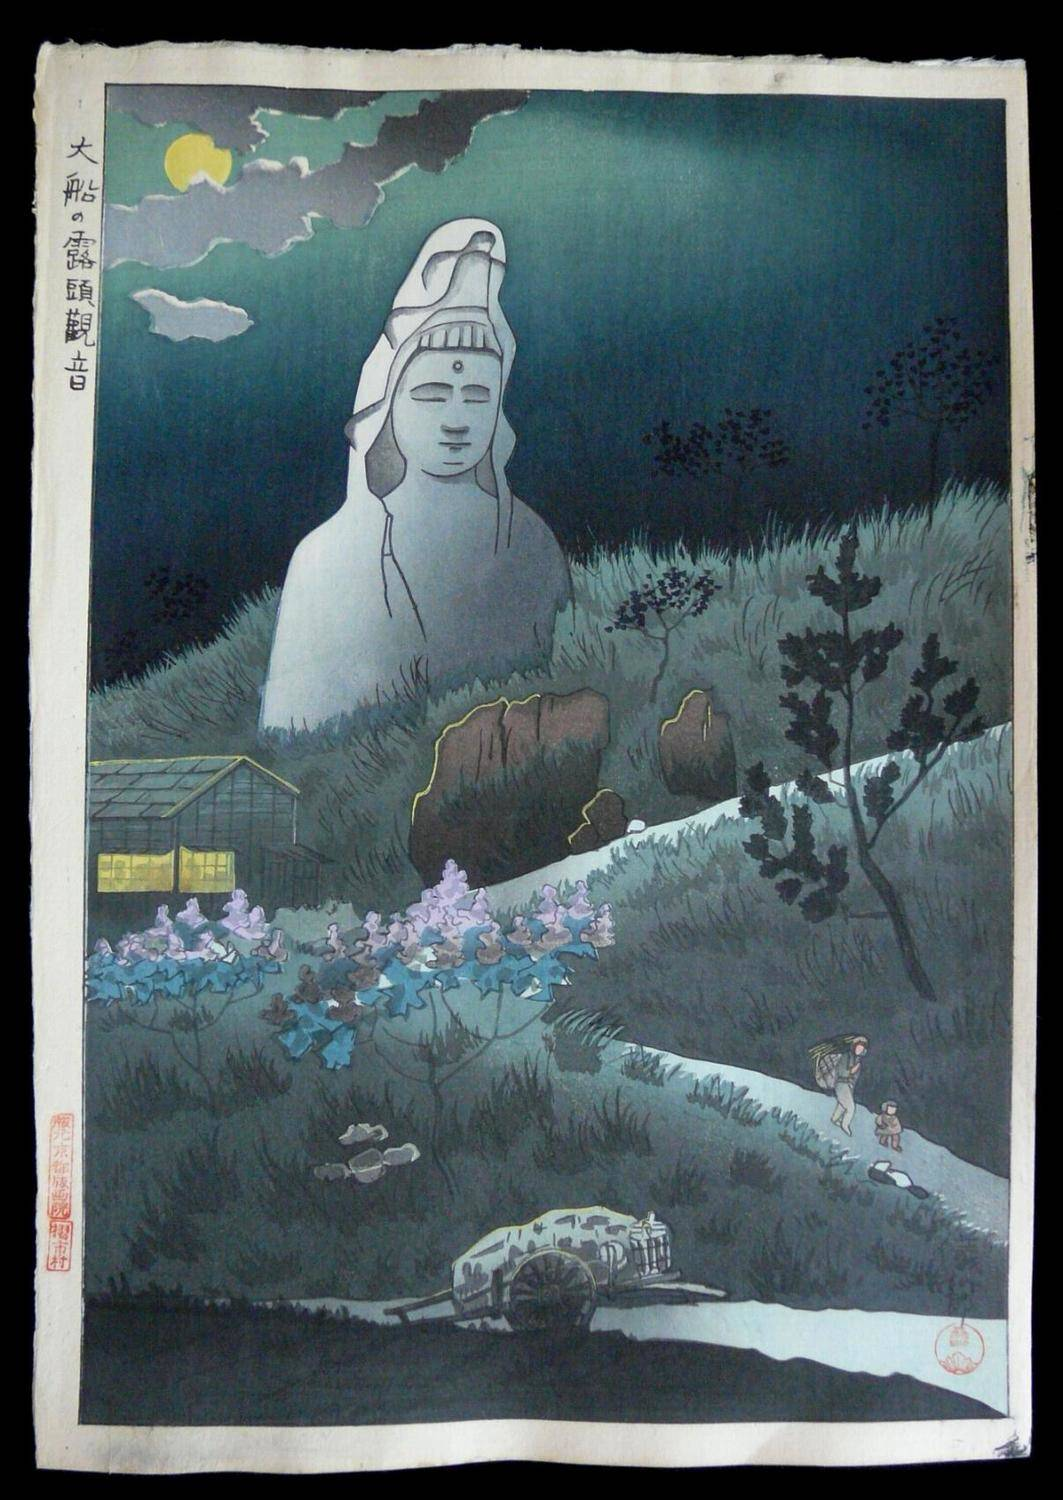 GIHACHIRO OKUYAMA: #P2185 STONE BUDDHA BY MOONLIGHT